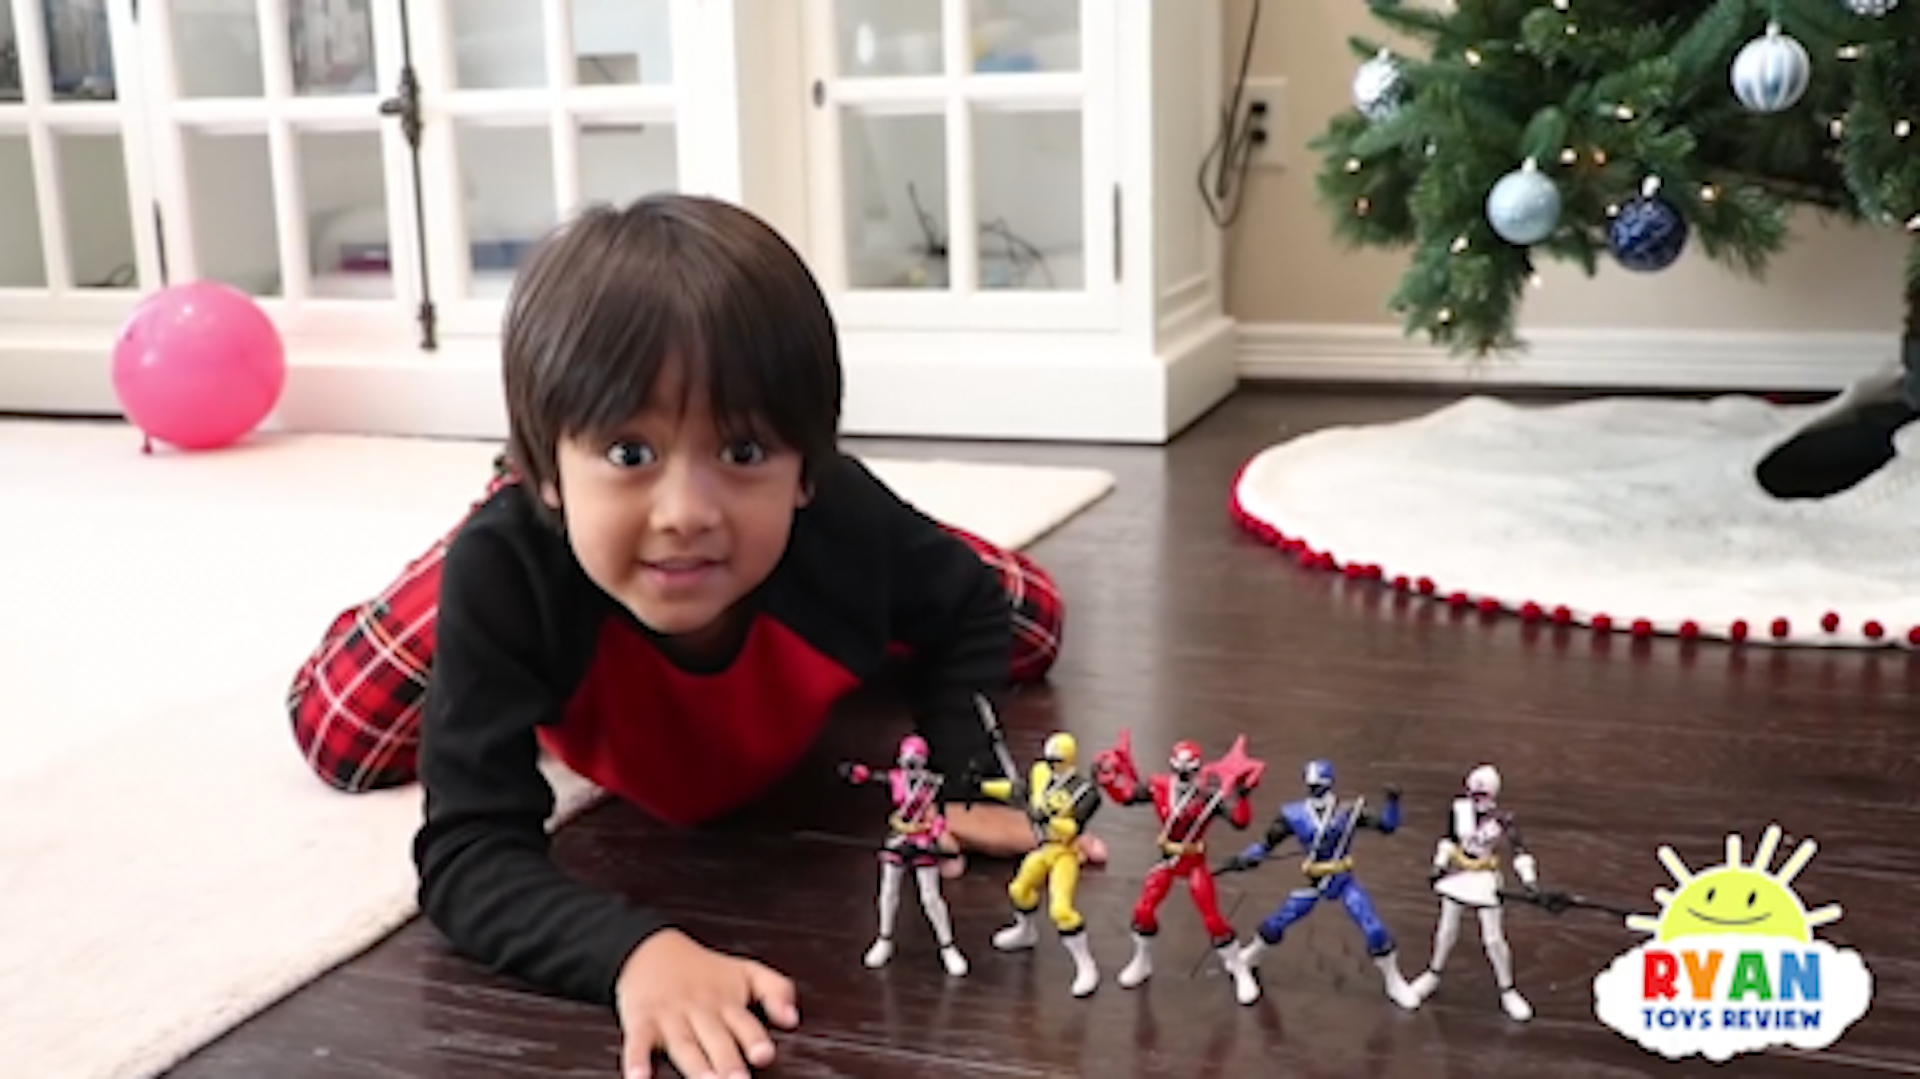 Toys For Boys Six Year : A 6 year old who reviews toys online made $11m on youtube last year